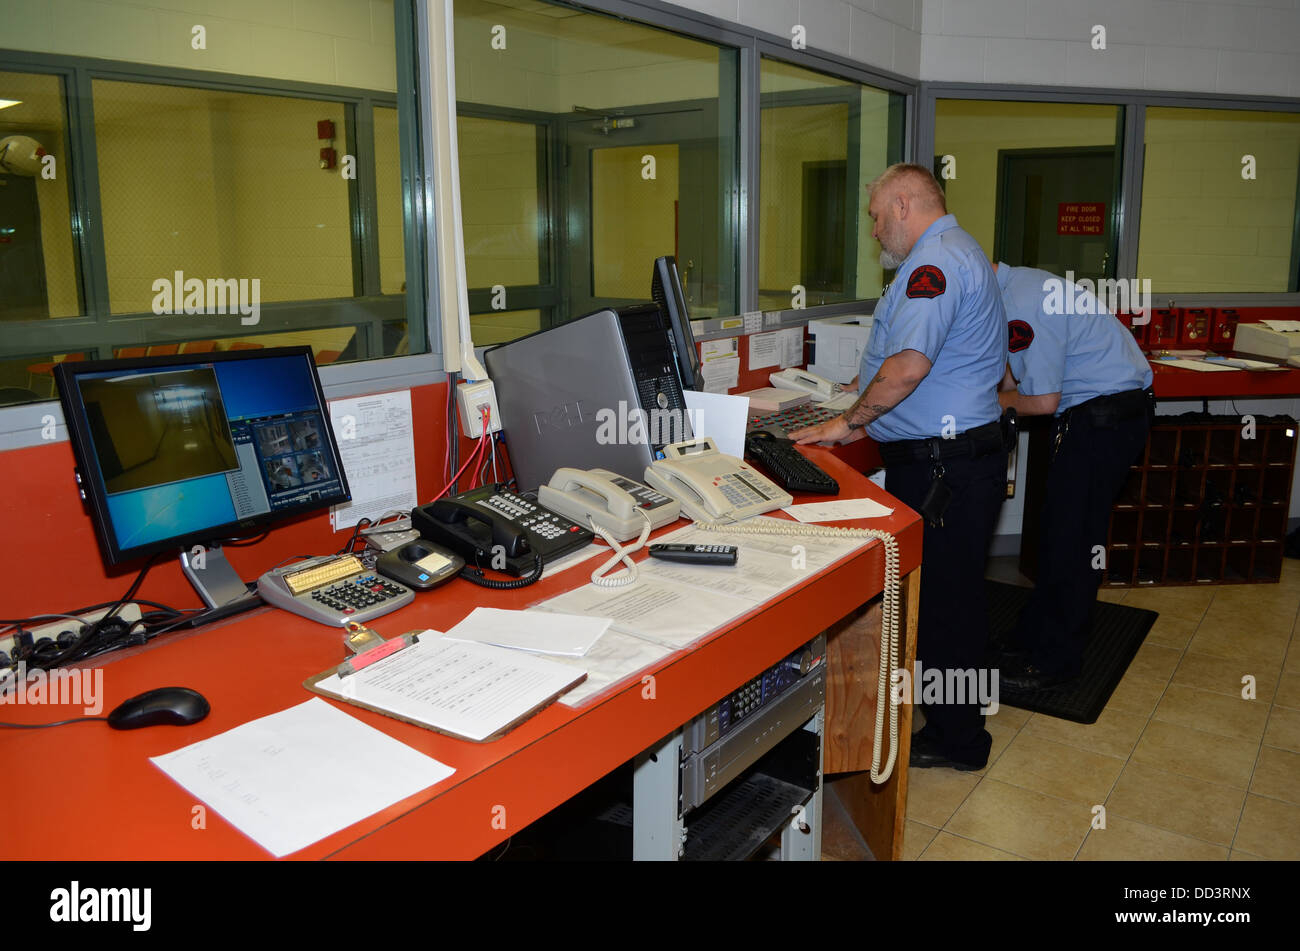 Master Control is the technological center of prisons. Diagnostic and Evaluation Center, Lincoln, Nebraska. - Stock Image